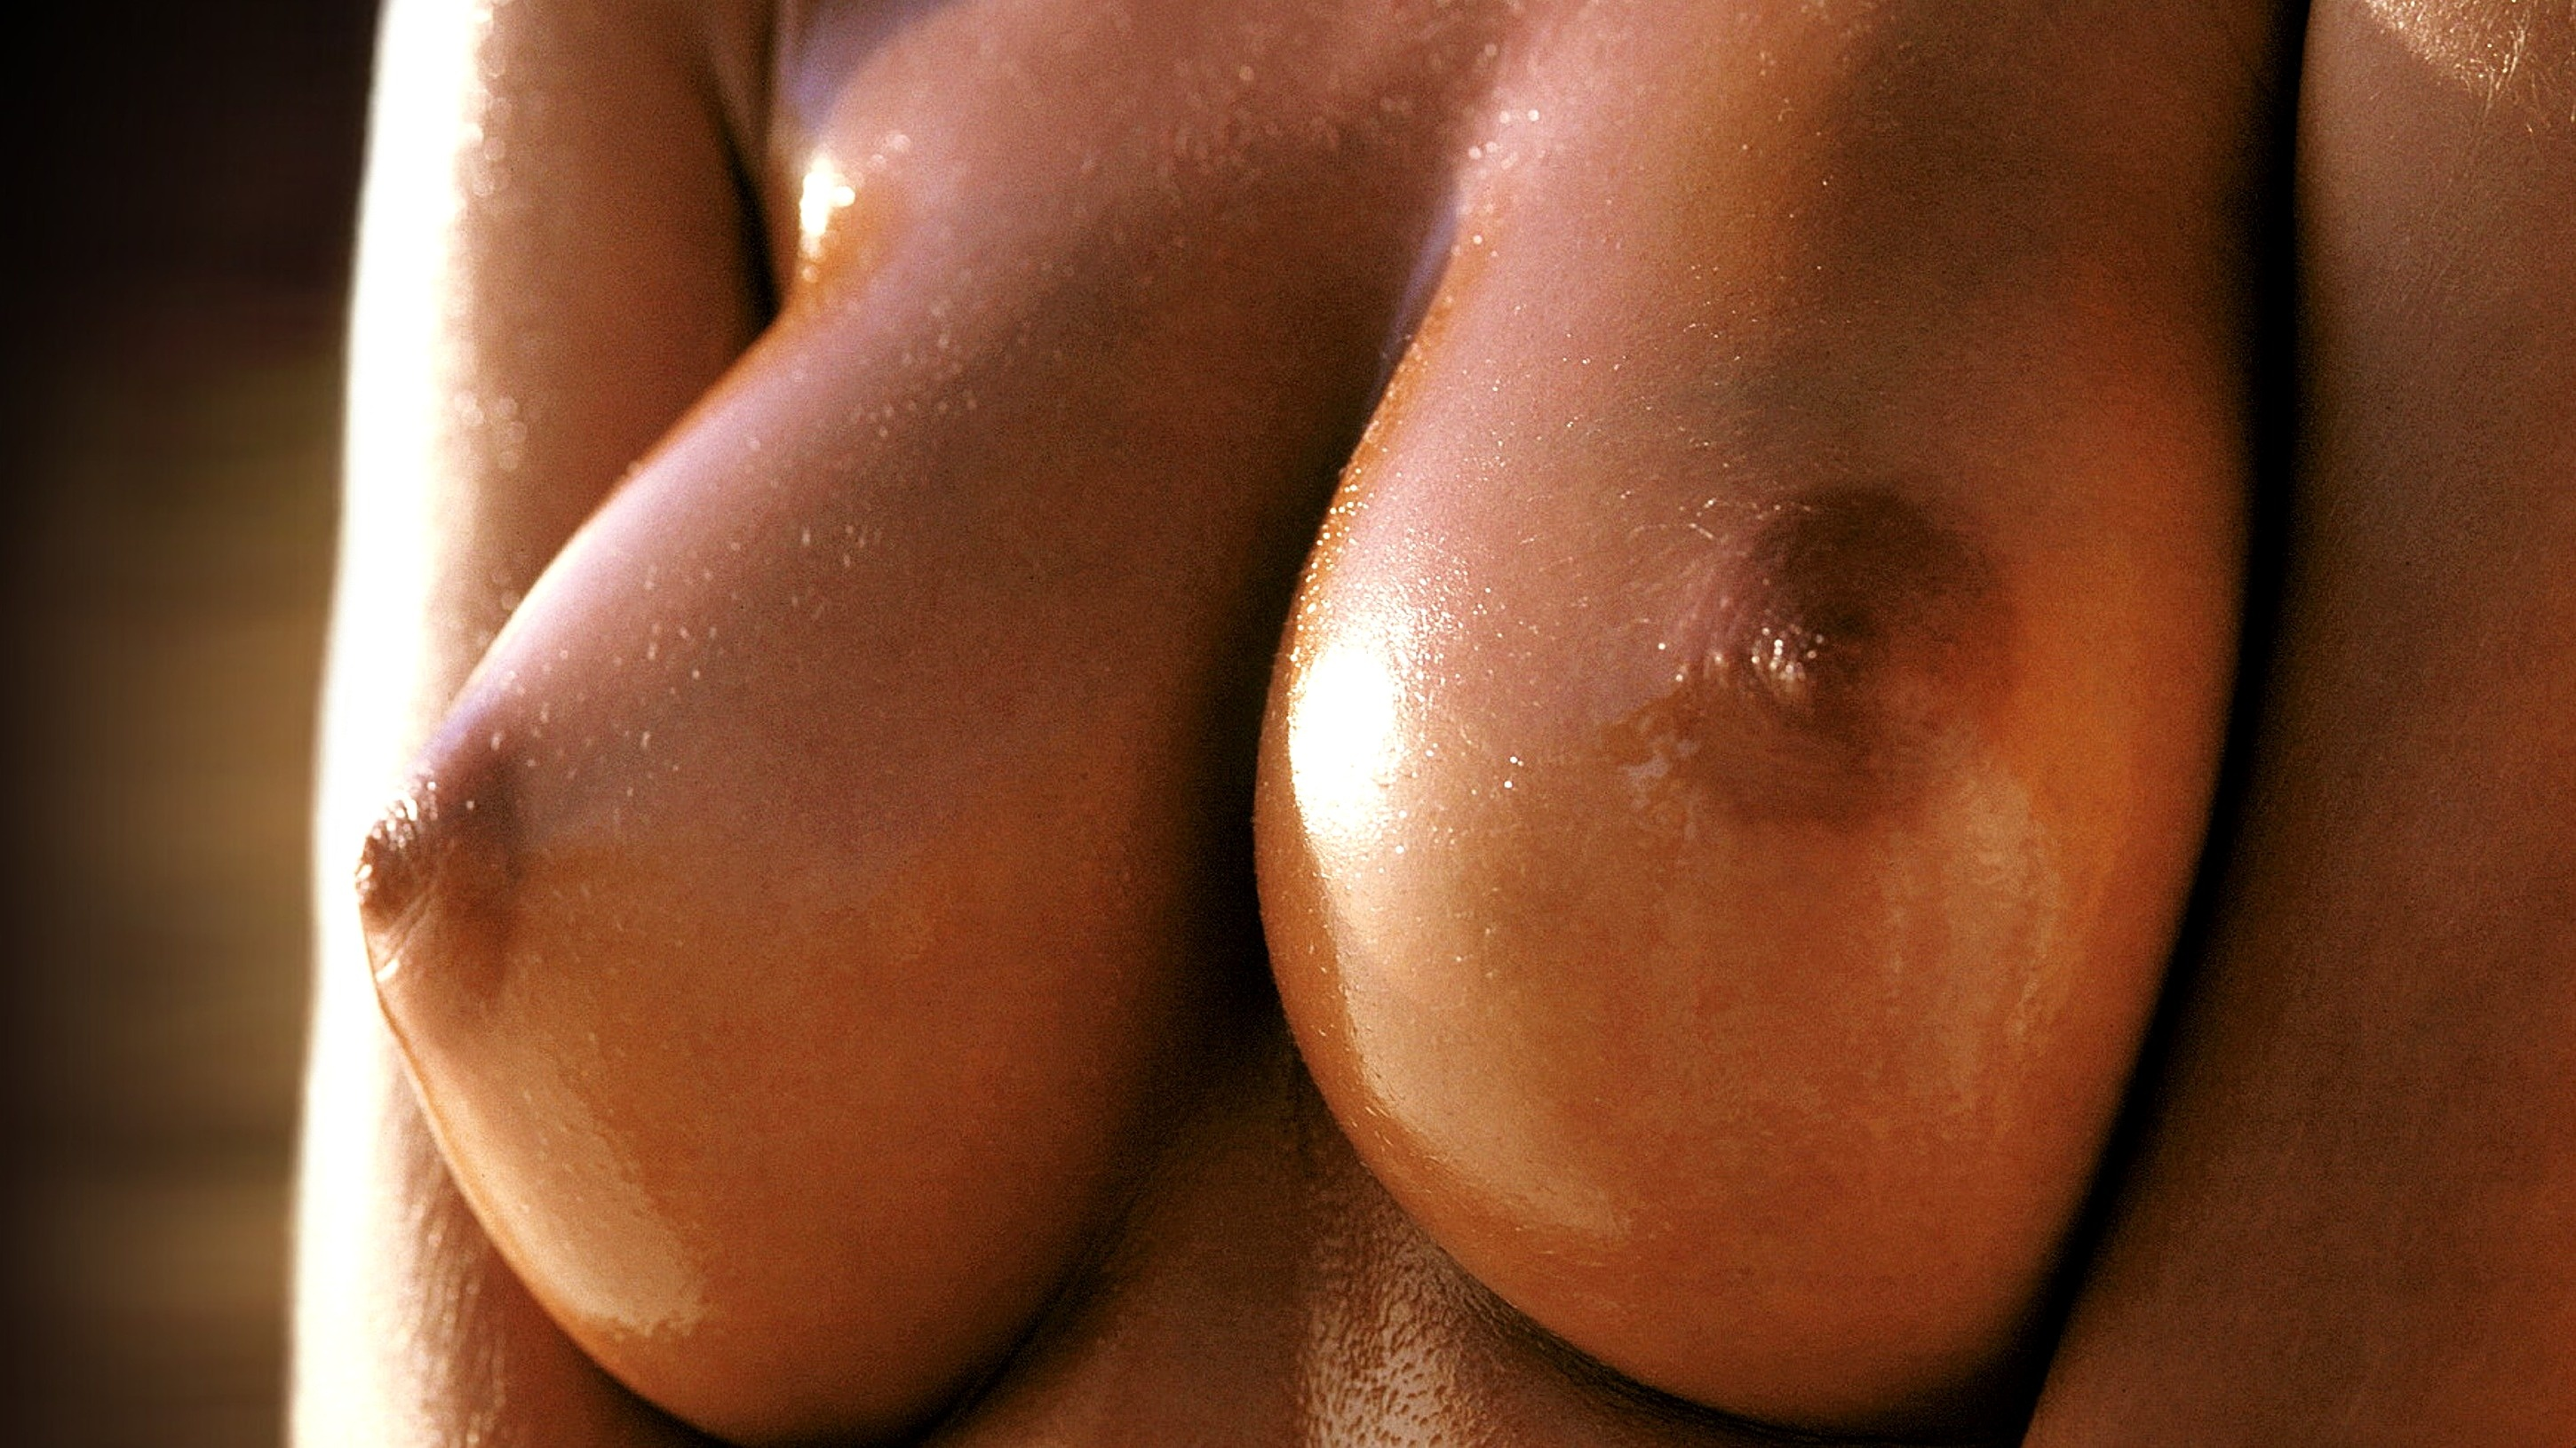 You thanks Boobs naked up close